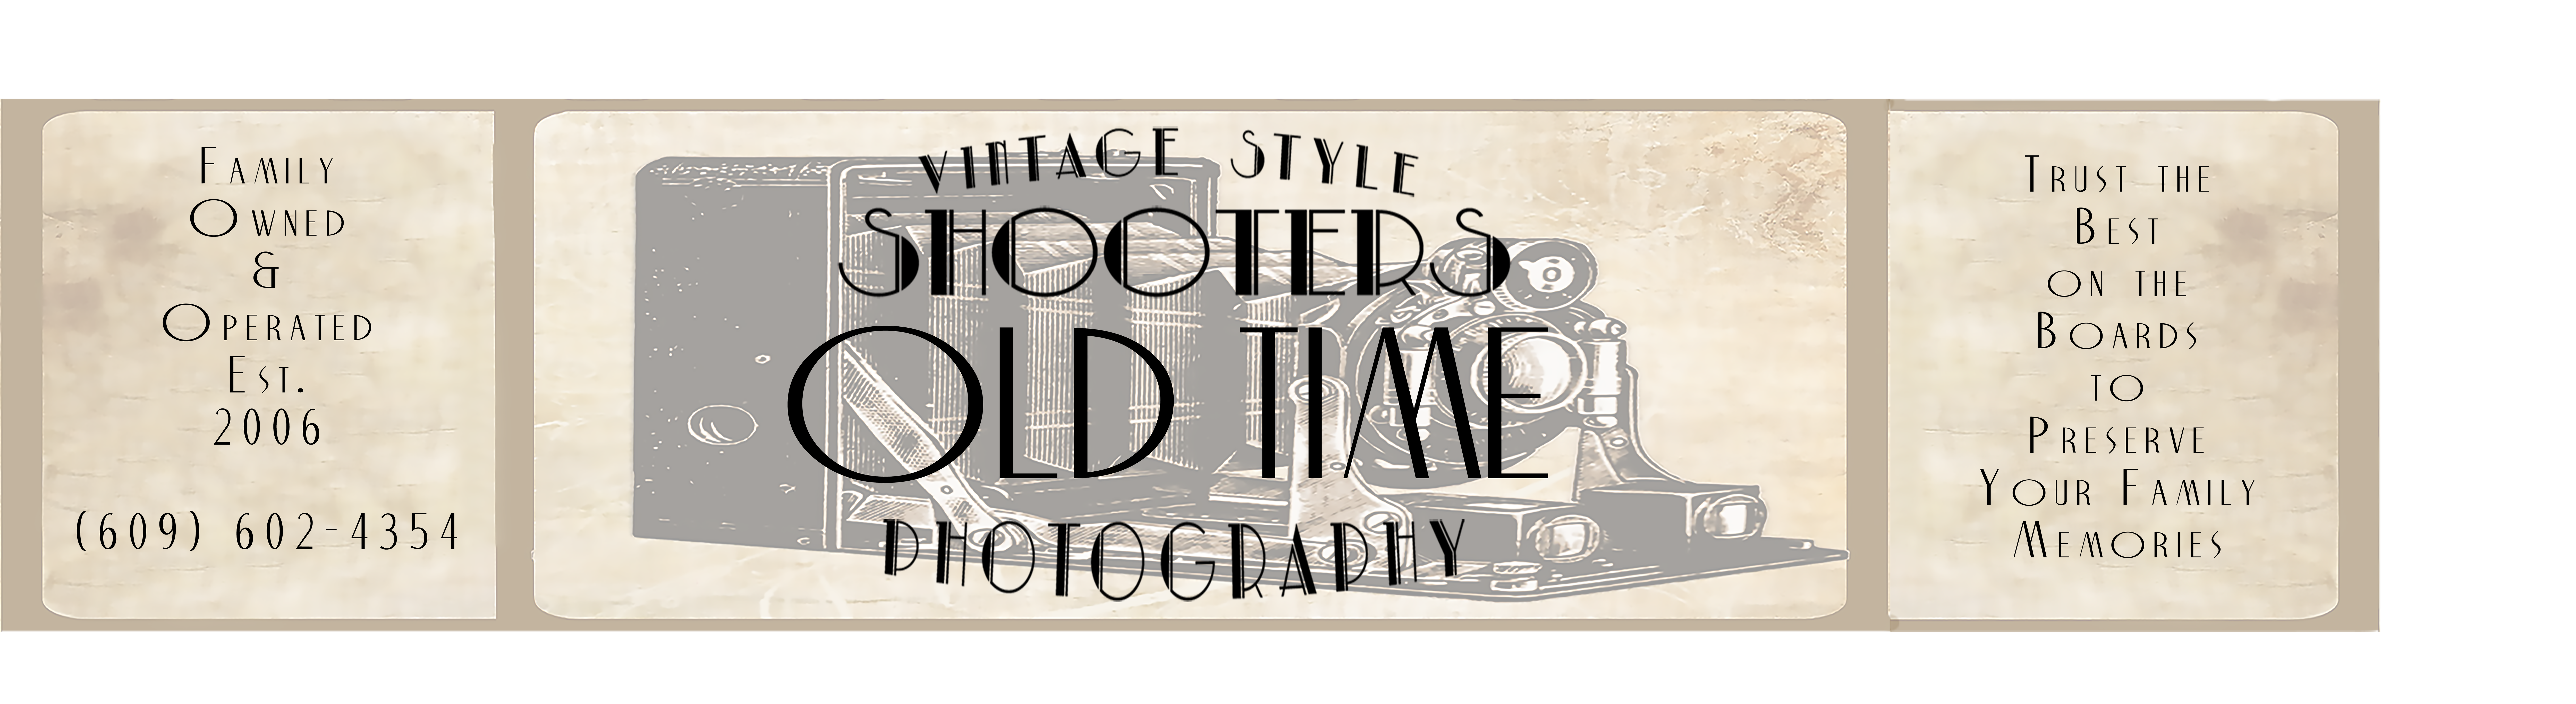 SHOOTERS Old Time Photos 609 602 4354